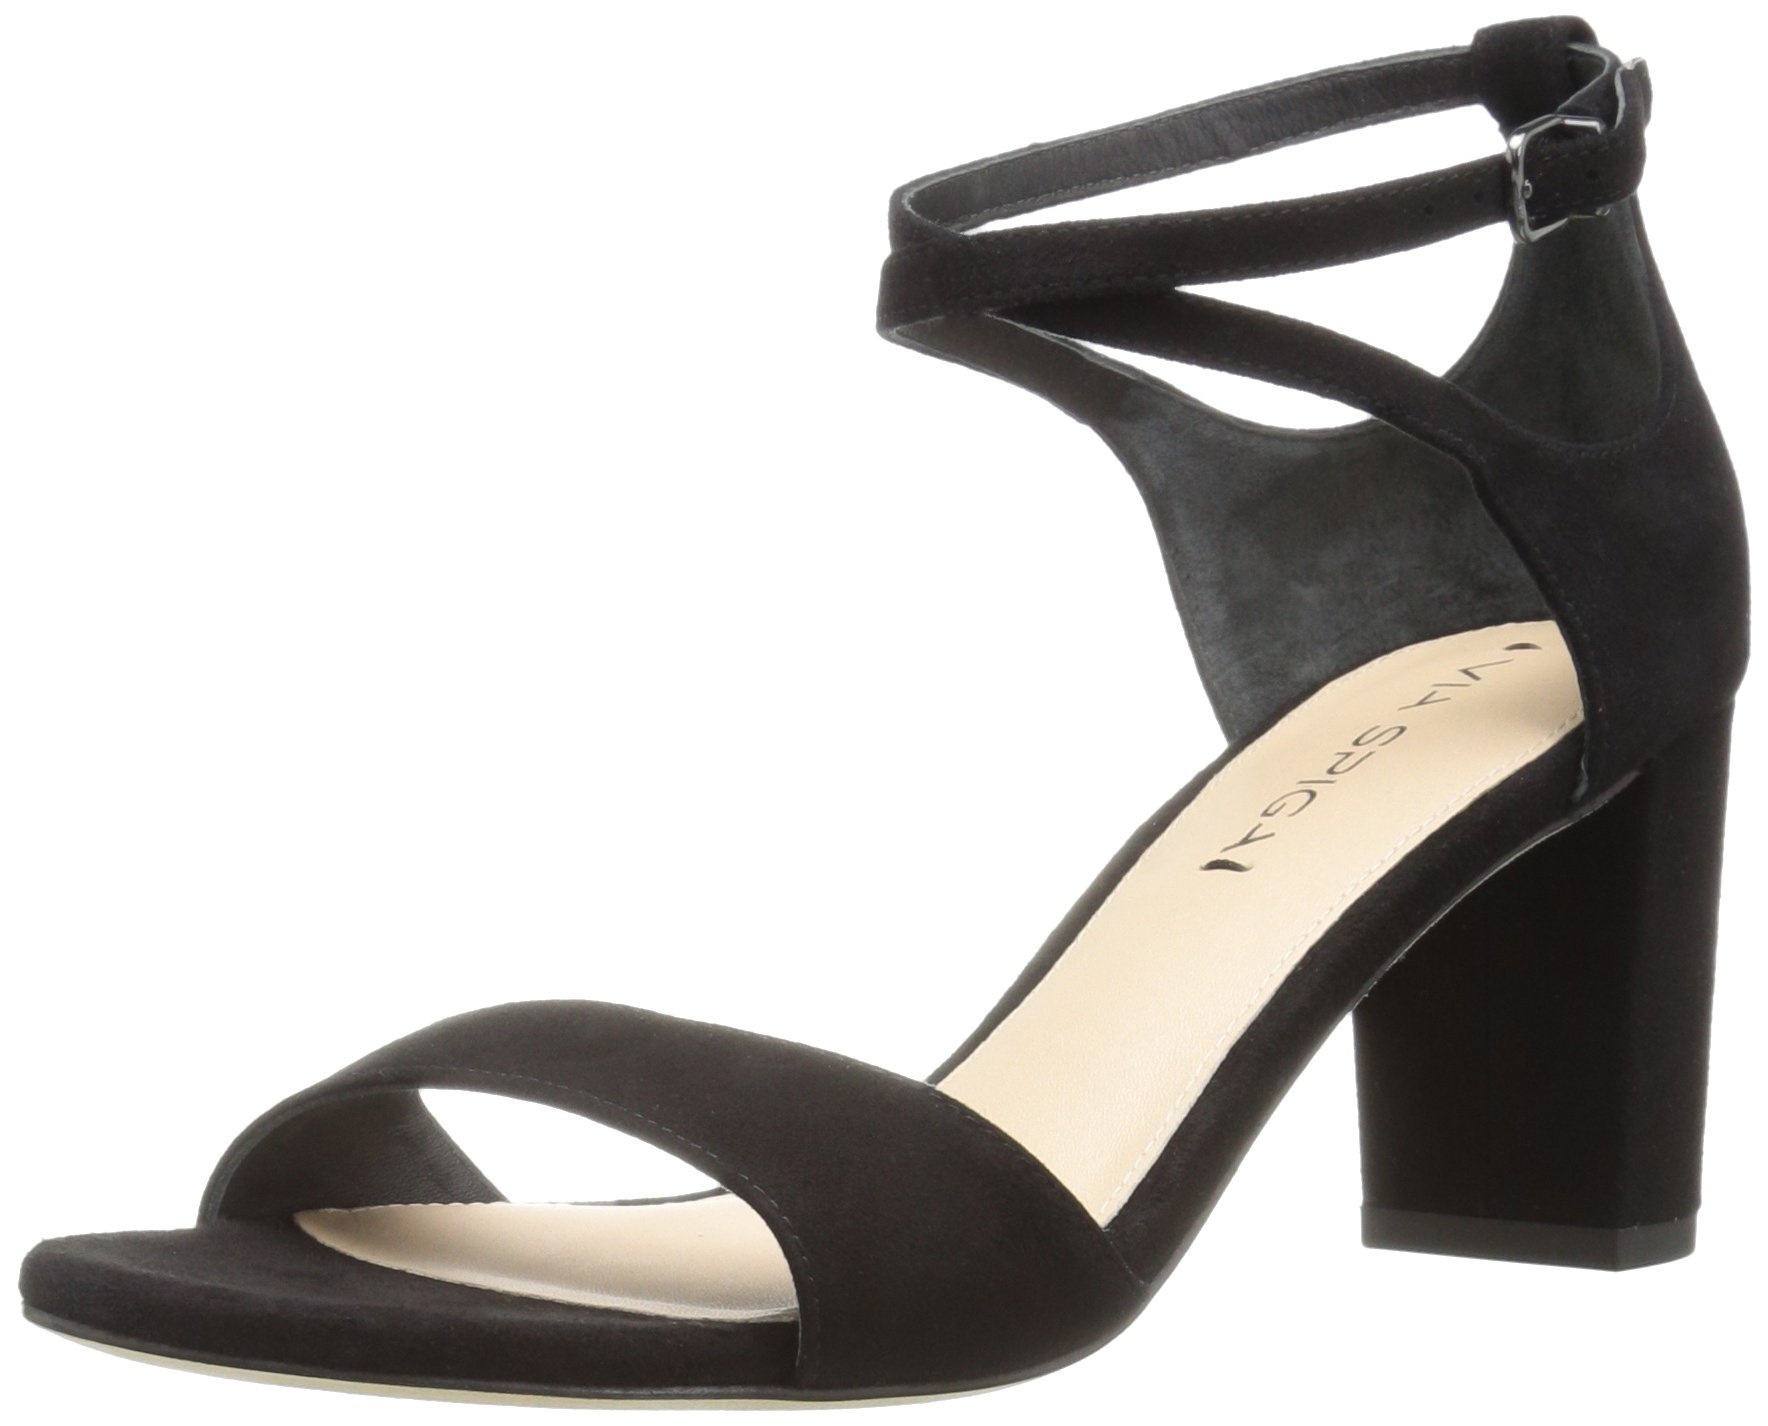 Via Spiga Women's Wendi Block Heel Dress Sandal, Black Suede, 6.5 M US